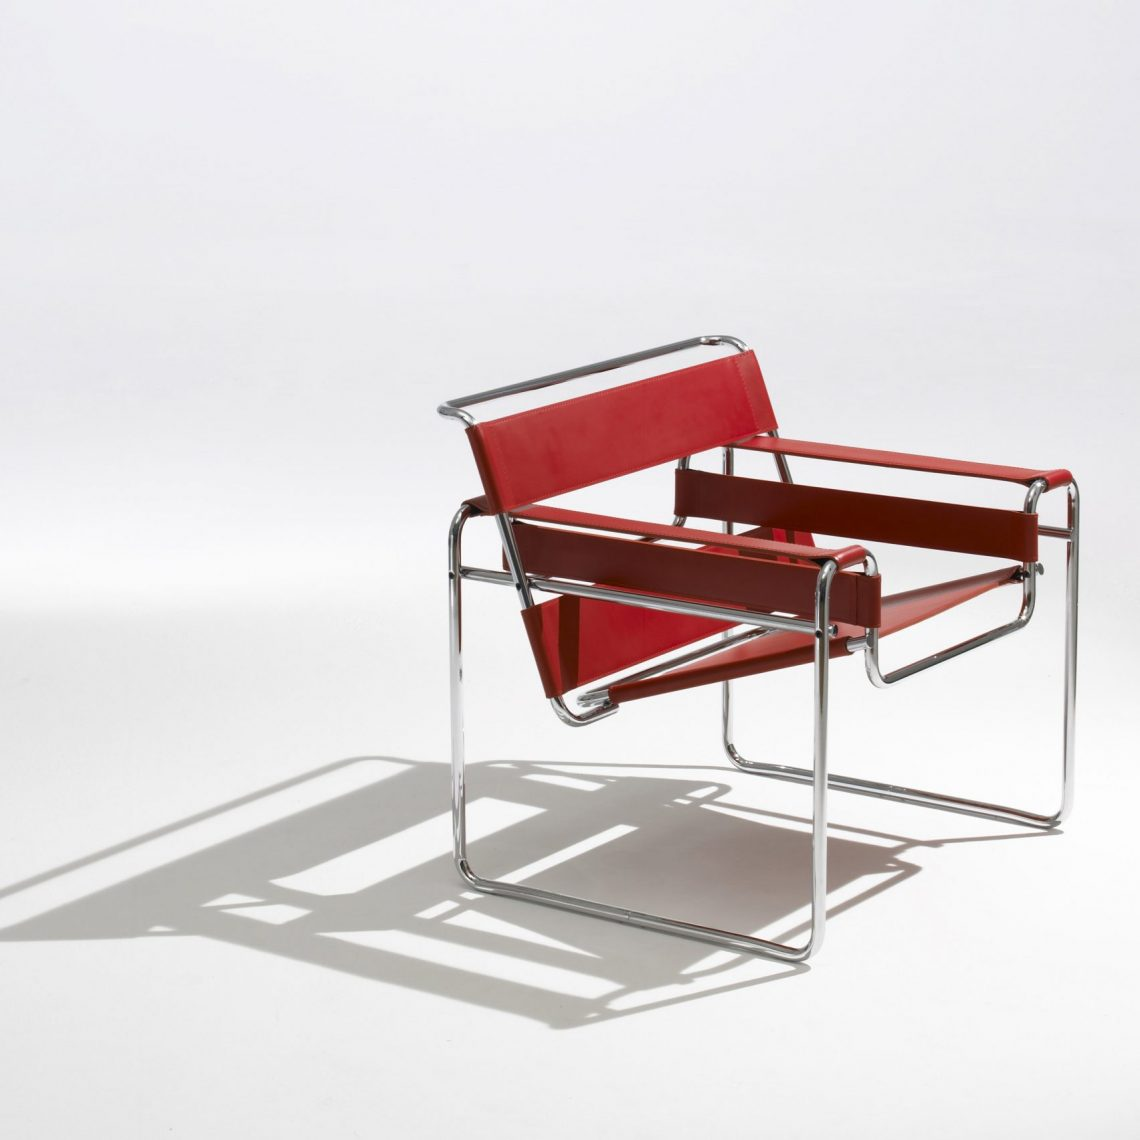 Selected_Happy birthday Bauhaus_Wassily_Chair